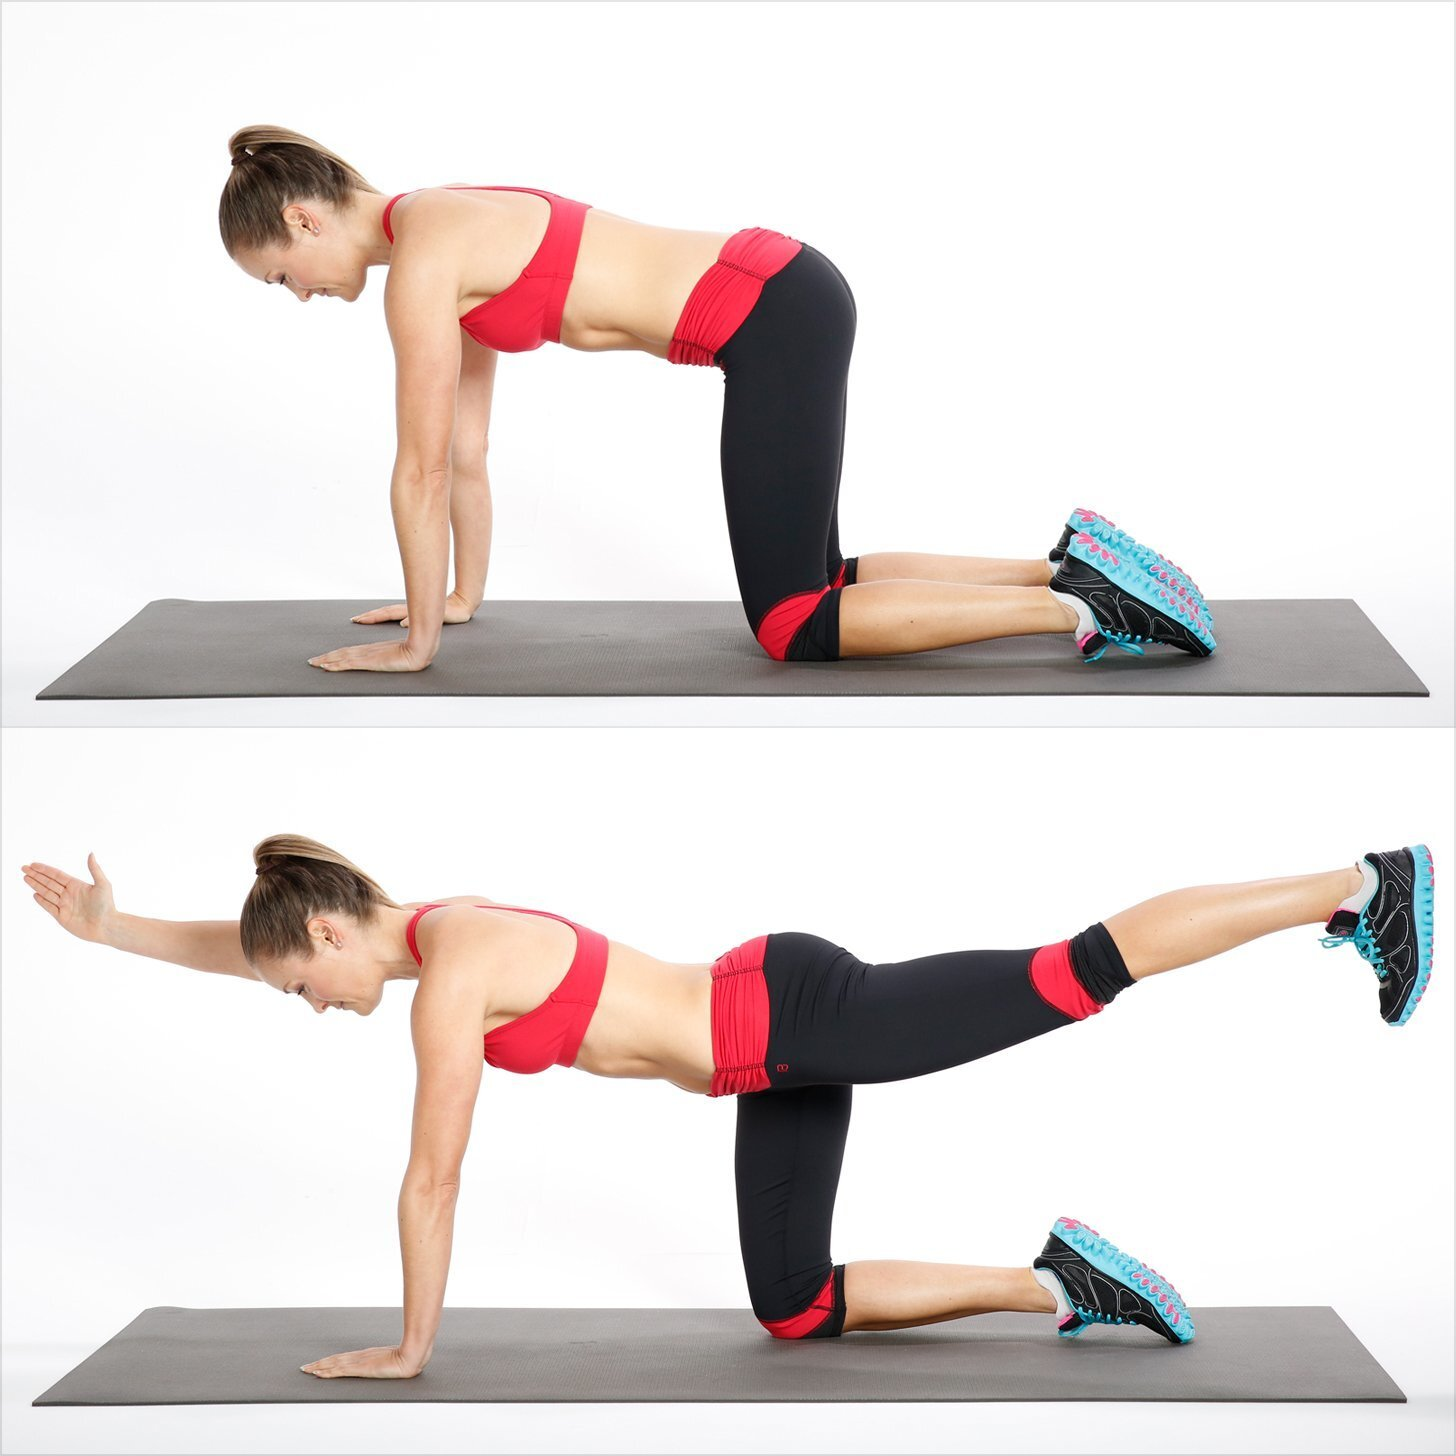 Get Your Best ABS Ever by Doing These 4 Exercises